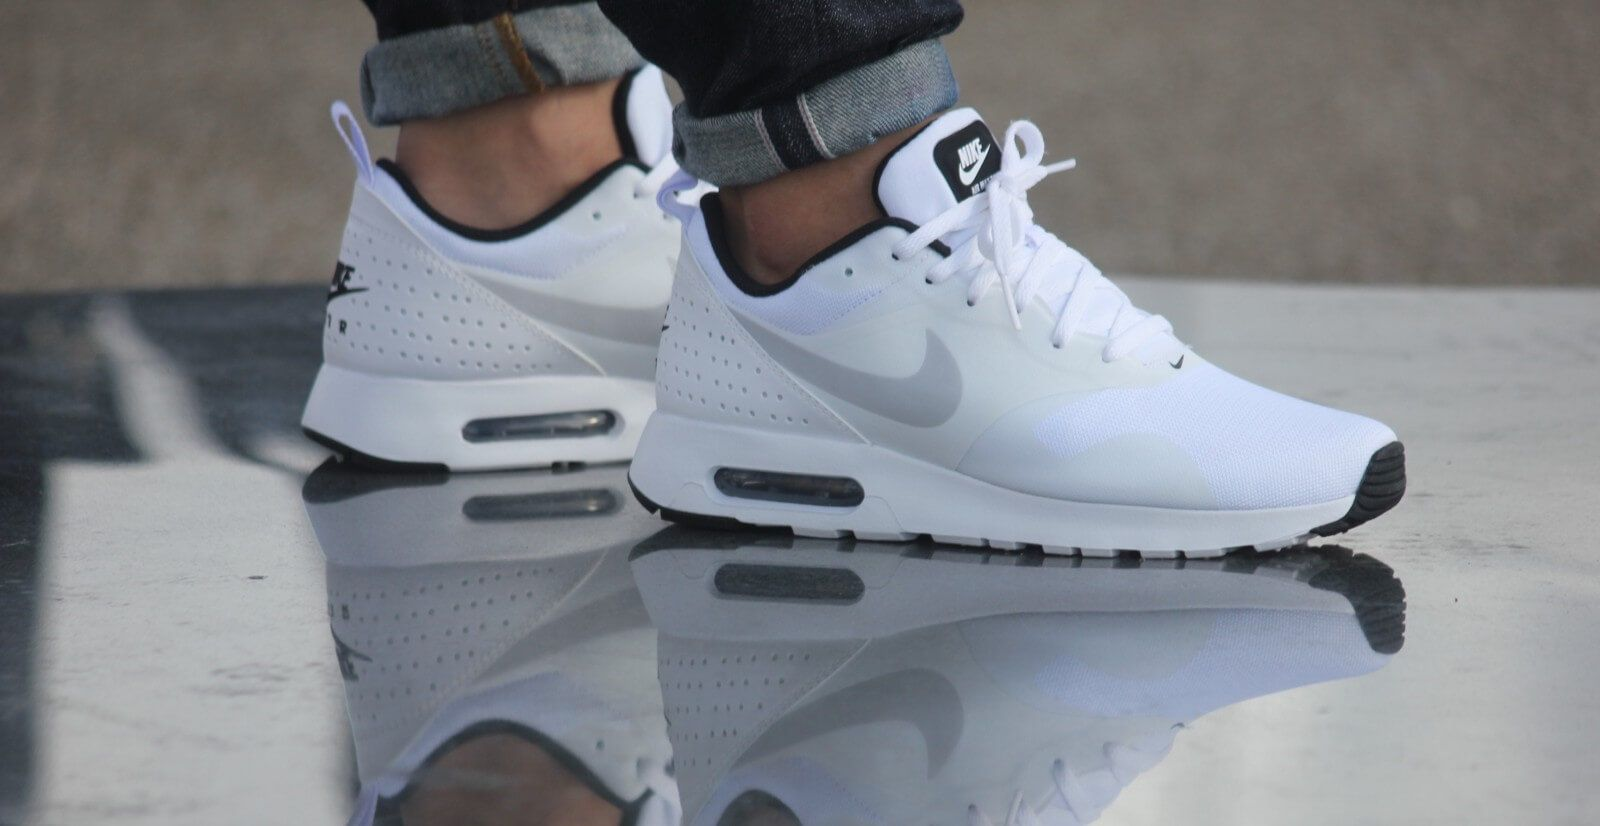 Pin By Annette Rodriguez On My Style In 2021 Sneakers Men Fashion Stylish Sneakers Mens Nike Shoes